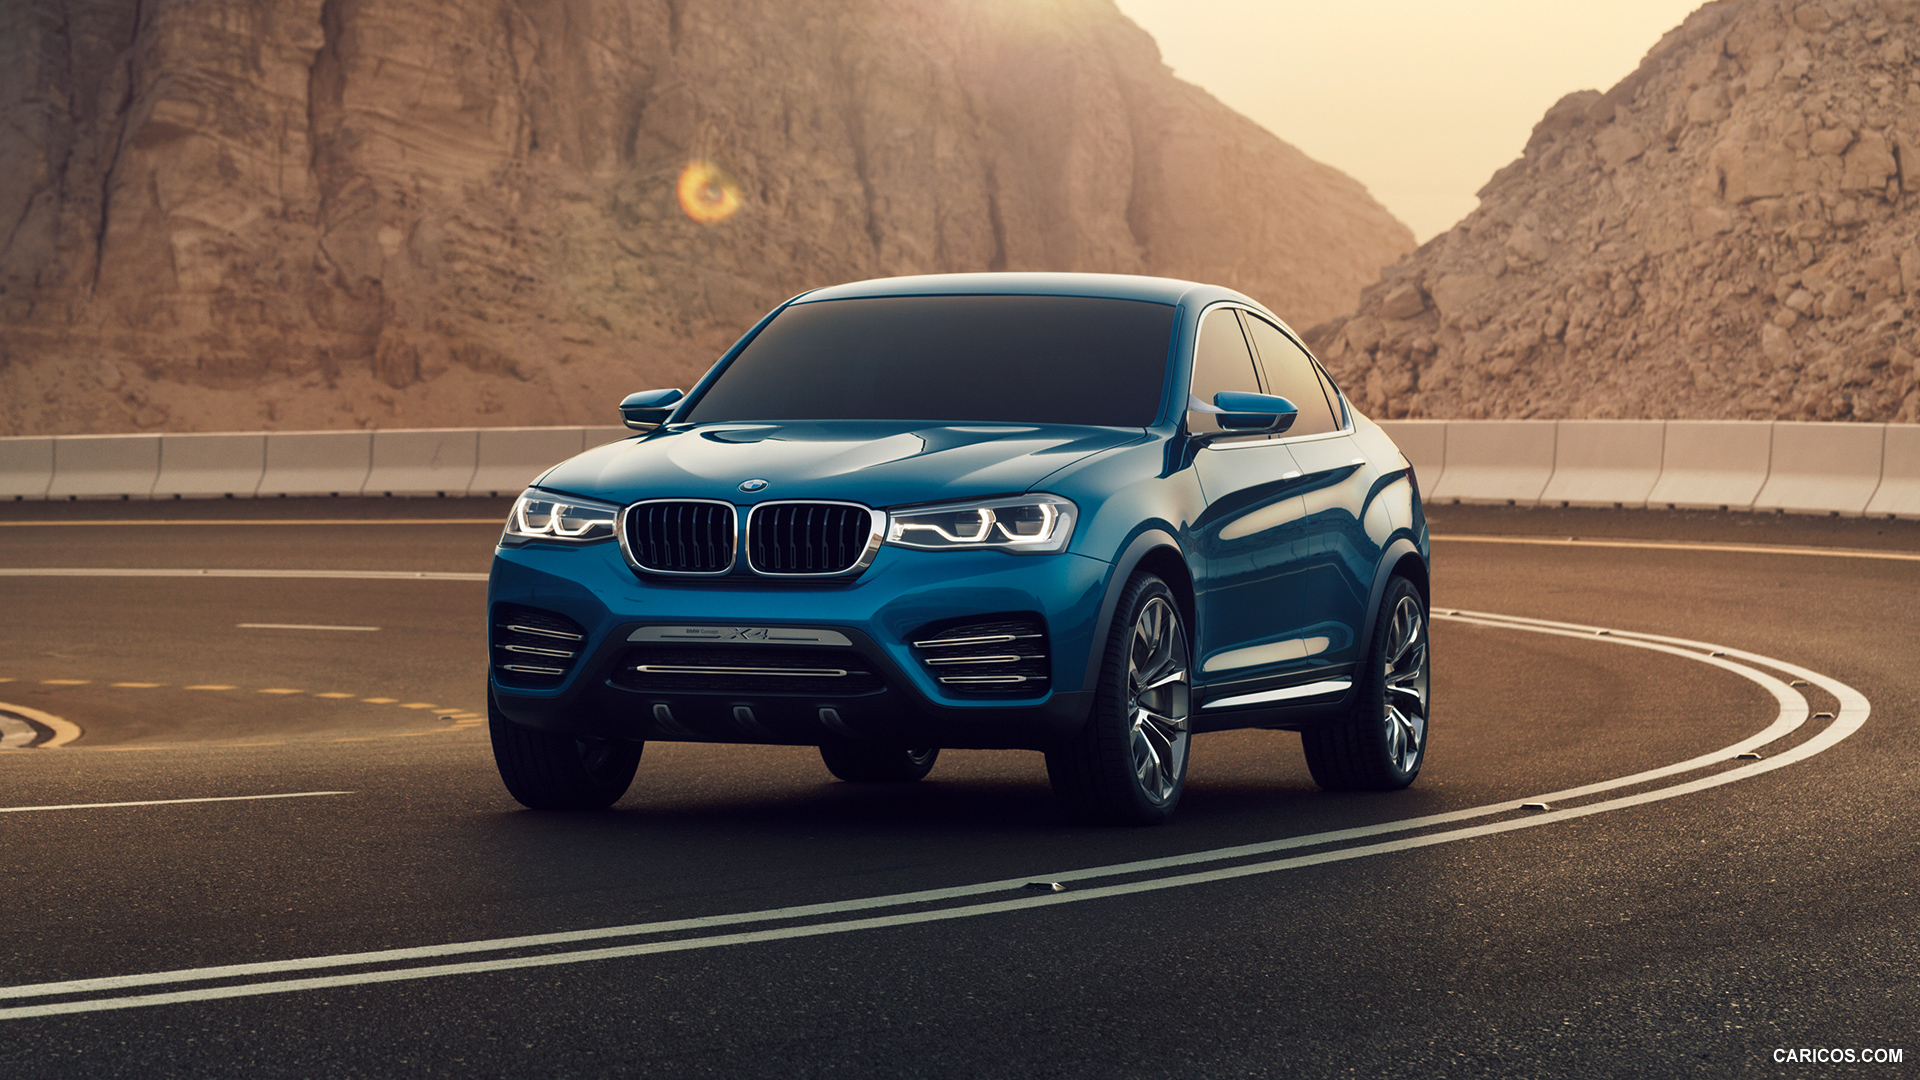 1920x1080 - BMW X4 Wallpapers 11